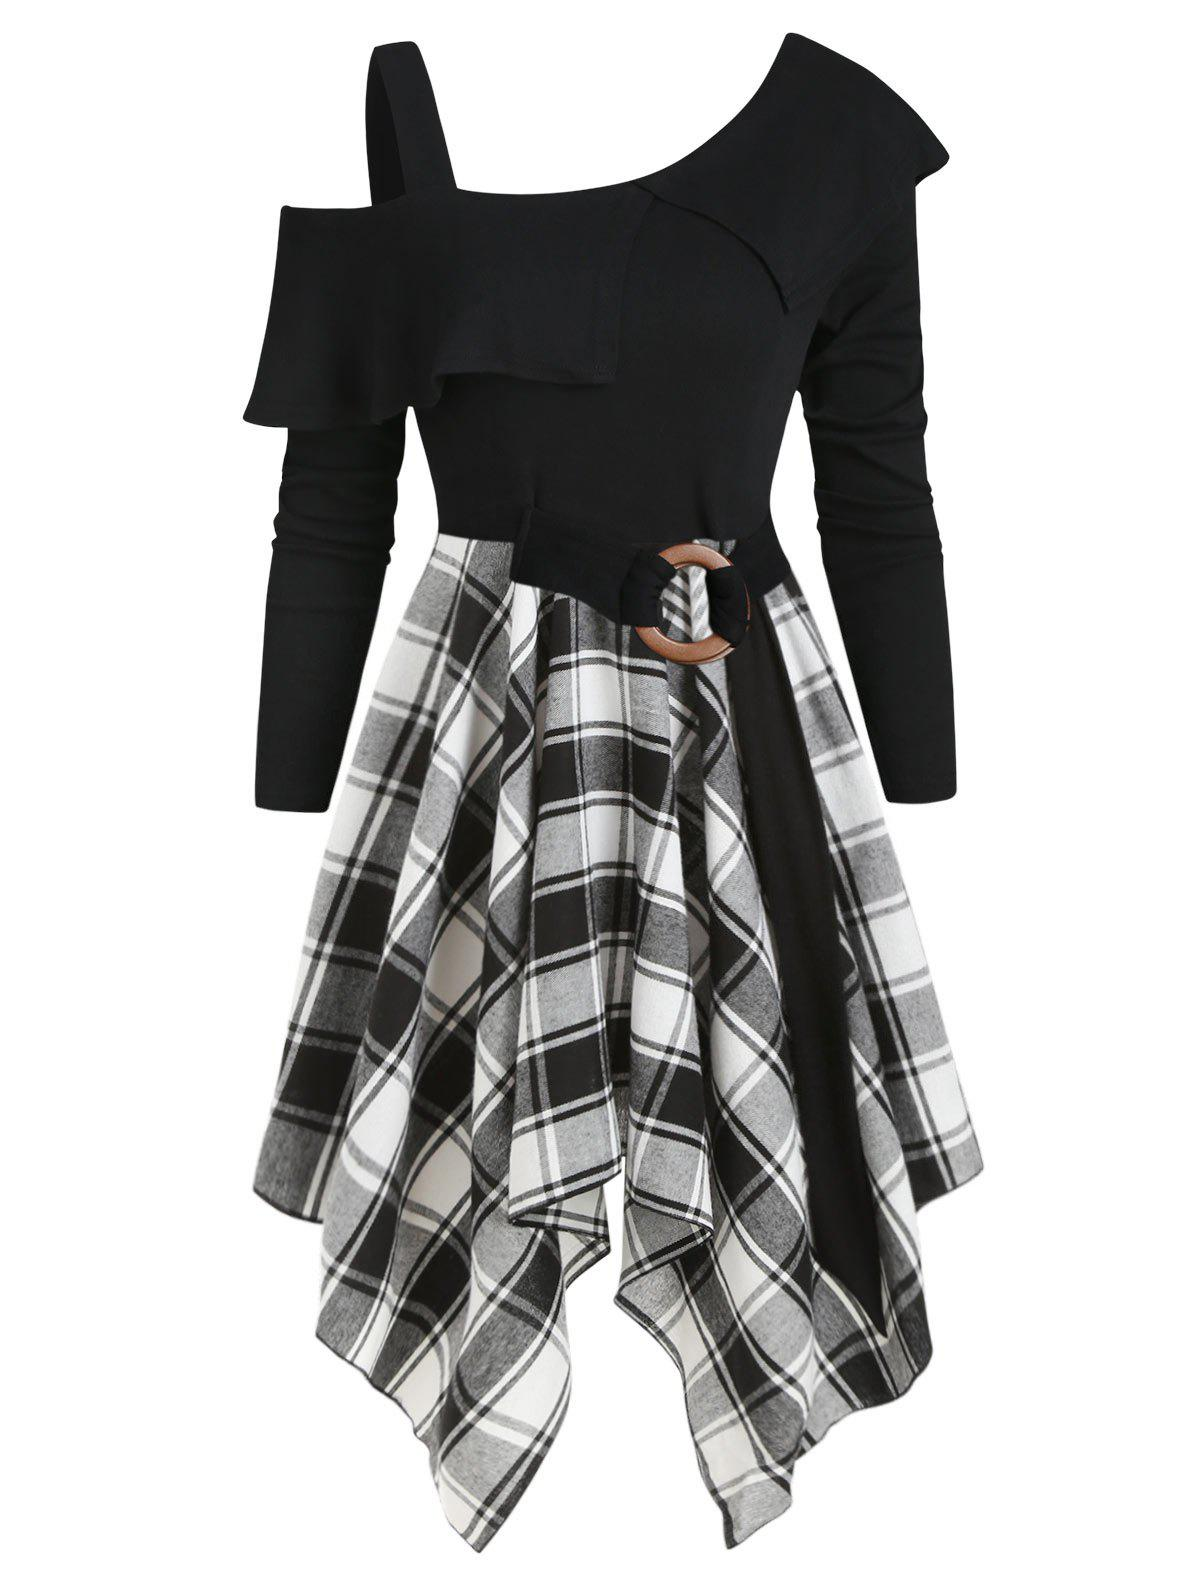 Latest Plaid Skew Neck Flounce Asymmetrical Dress